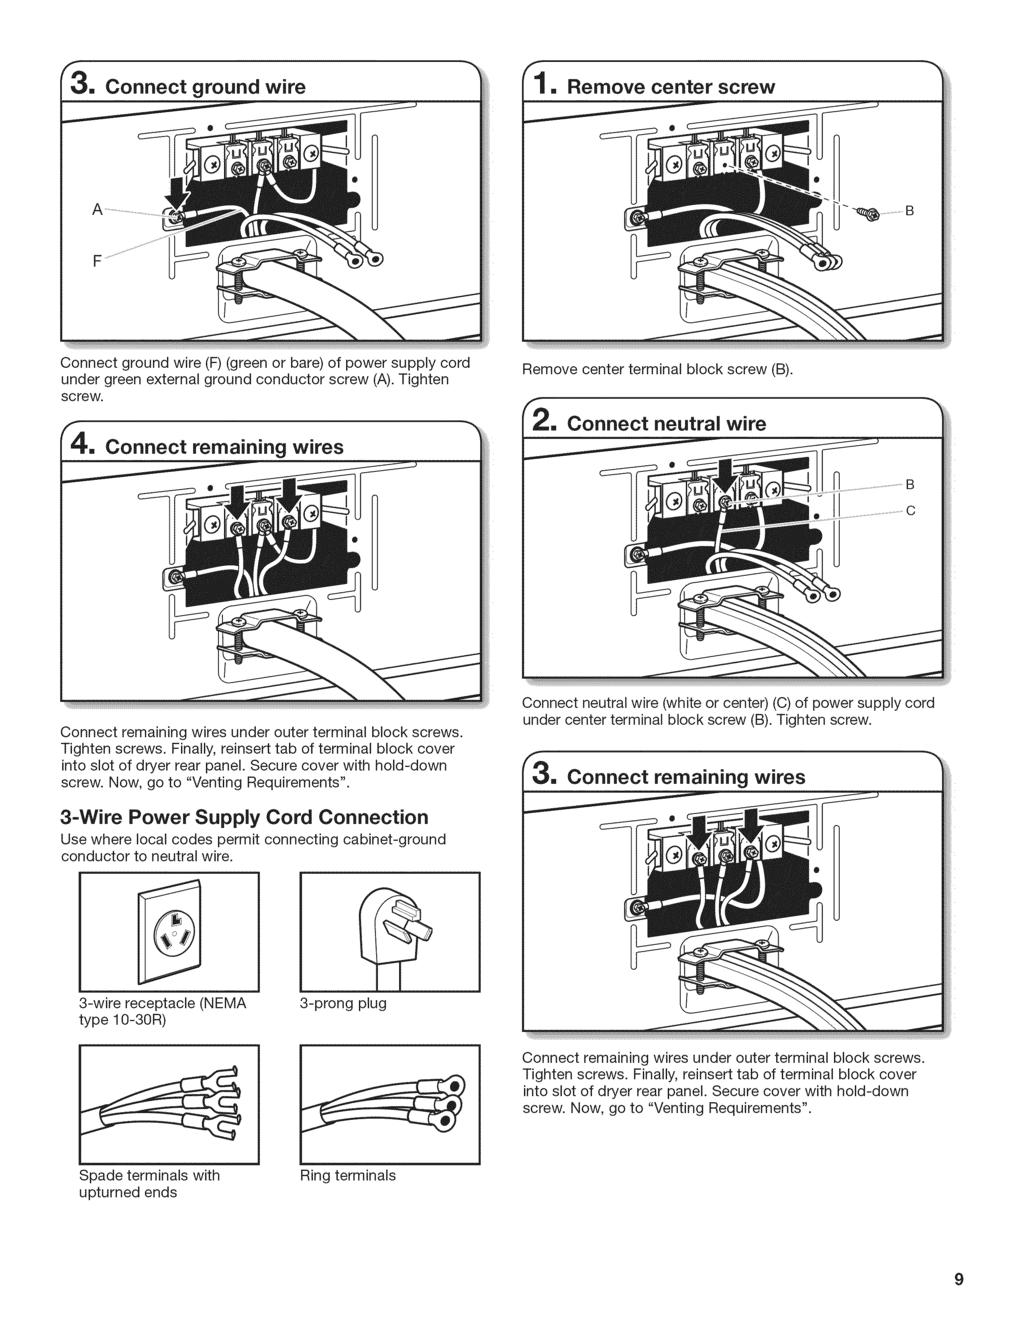 Electric Dryer Installation Instructions Pdf Center Wiring Further Nema 6 30r Plug Diagram In Addition Connect Ground Wire Remove Screw F Green Or